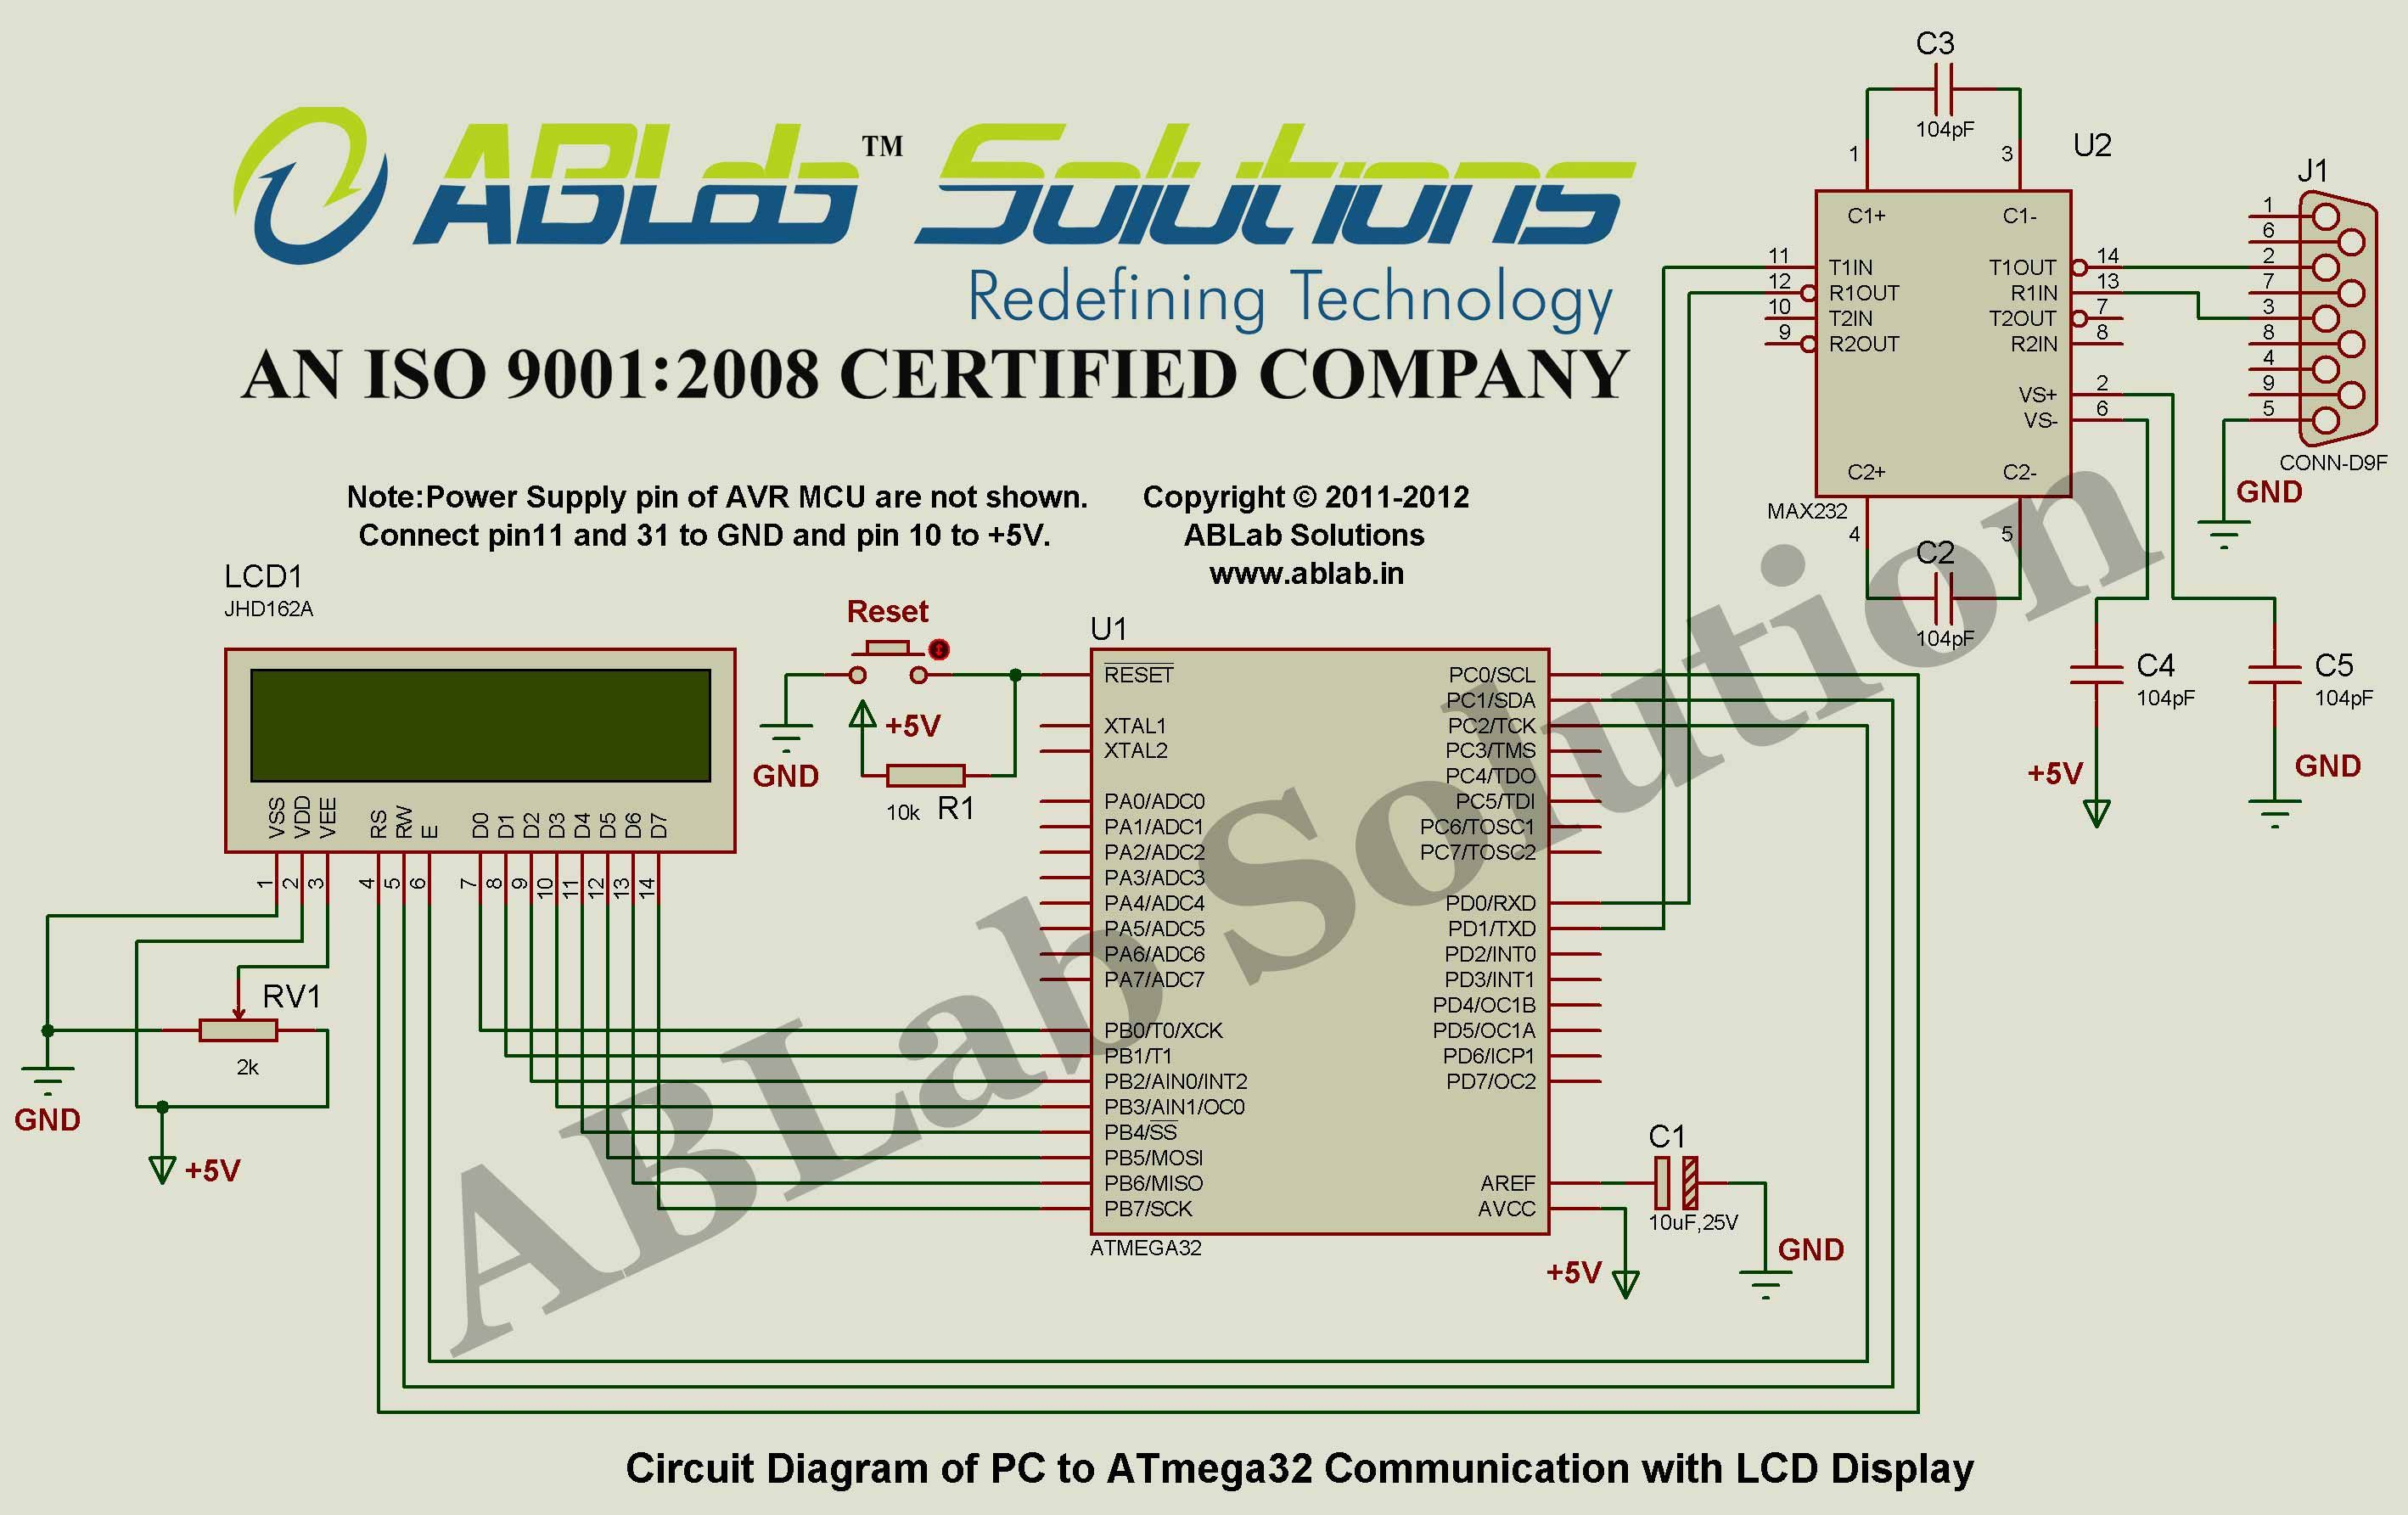 Block Diagram Lcd Display Trusted Schematics Crt Monitor Schematic Pc To Avr Atmega32 Microcontroller Communication With Zener Diode Tester Circuit